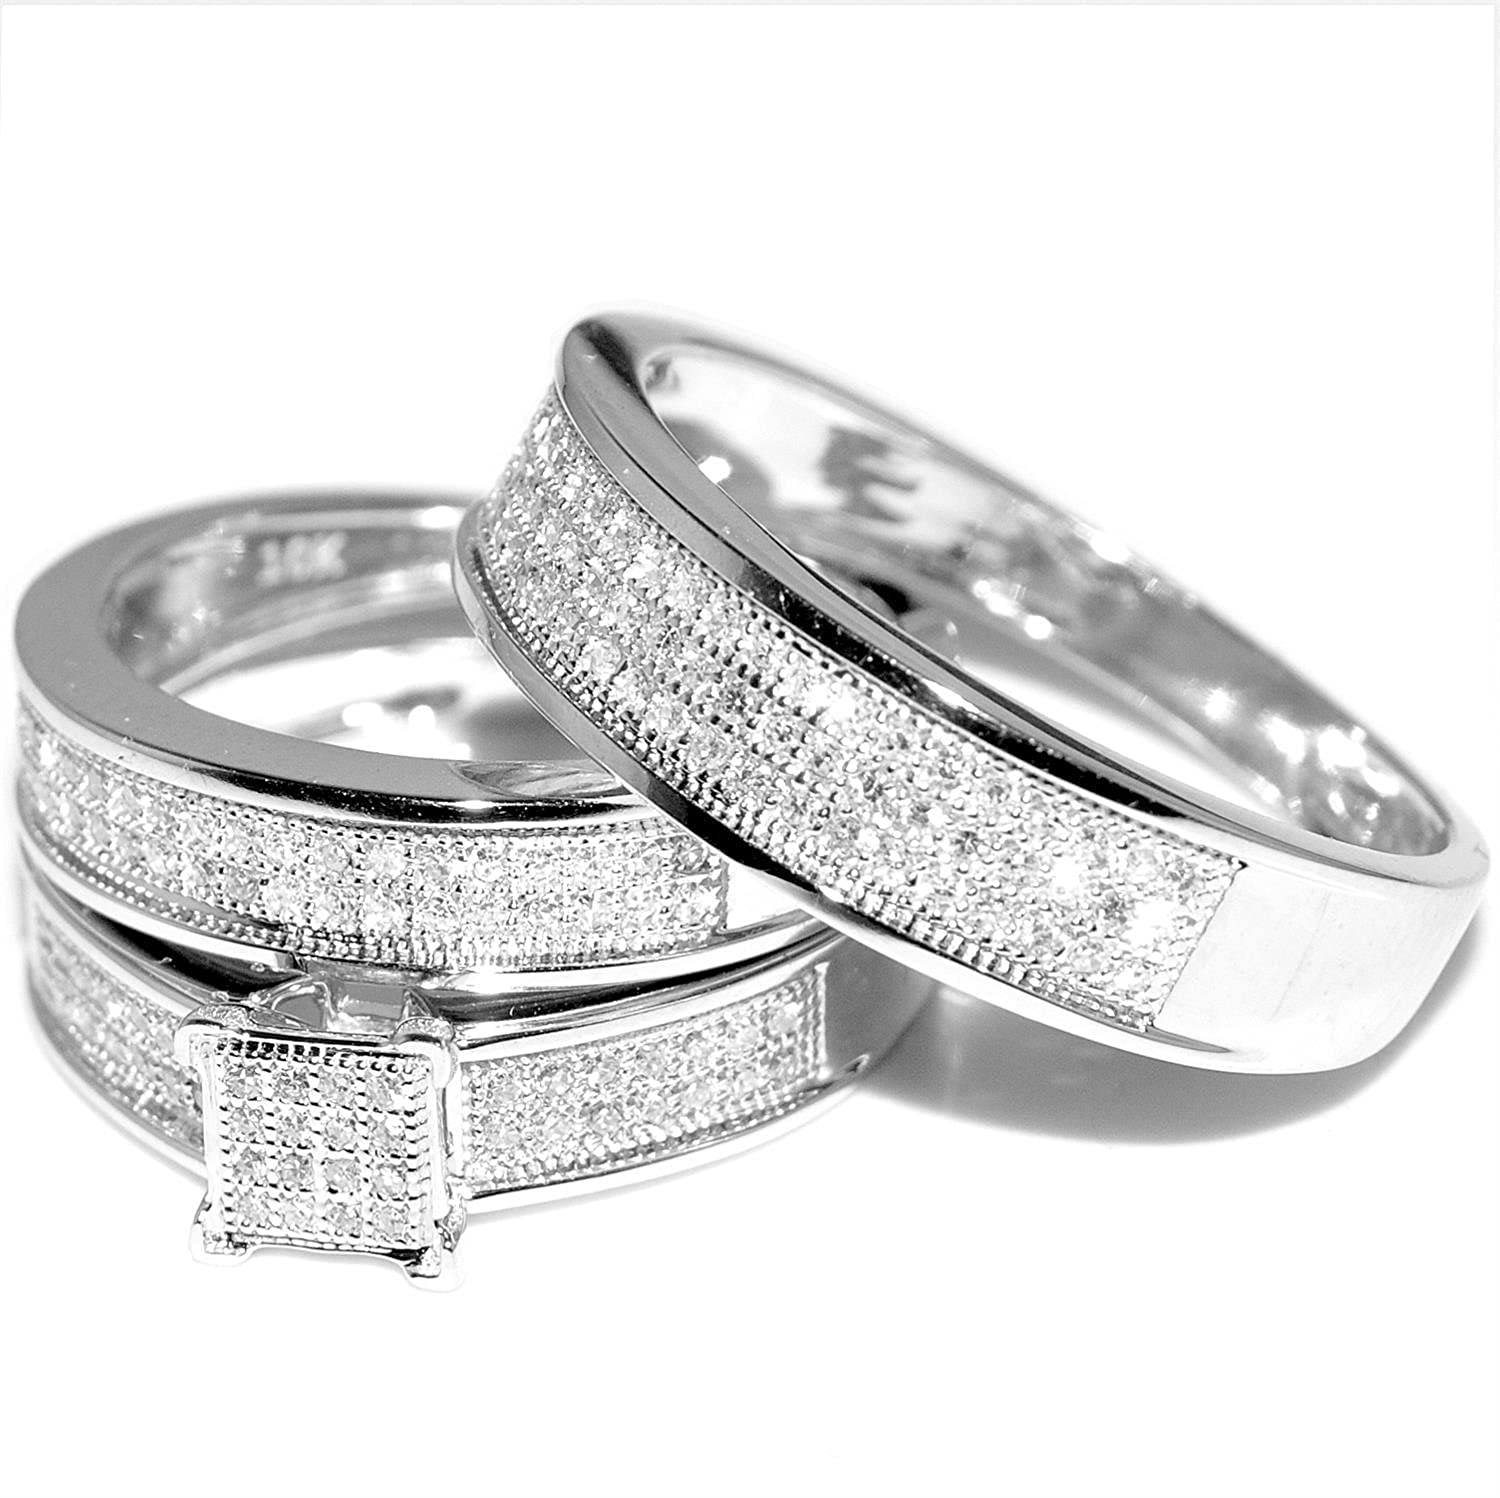 white gold trio wedding set mens womens wedding rings matching 040cttw diamondamazoncom - White Gold Wedding Ring